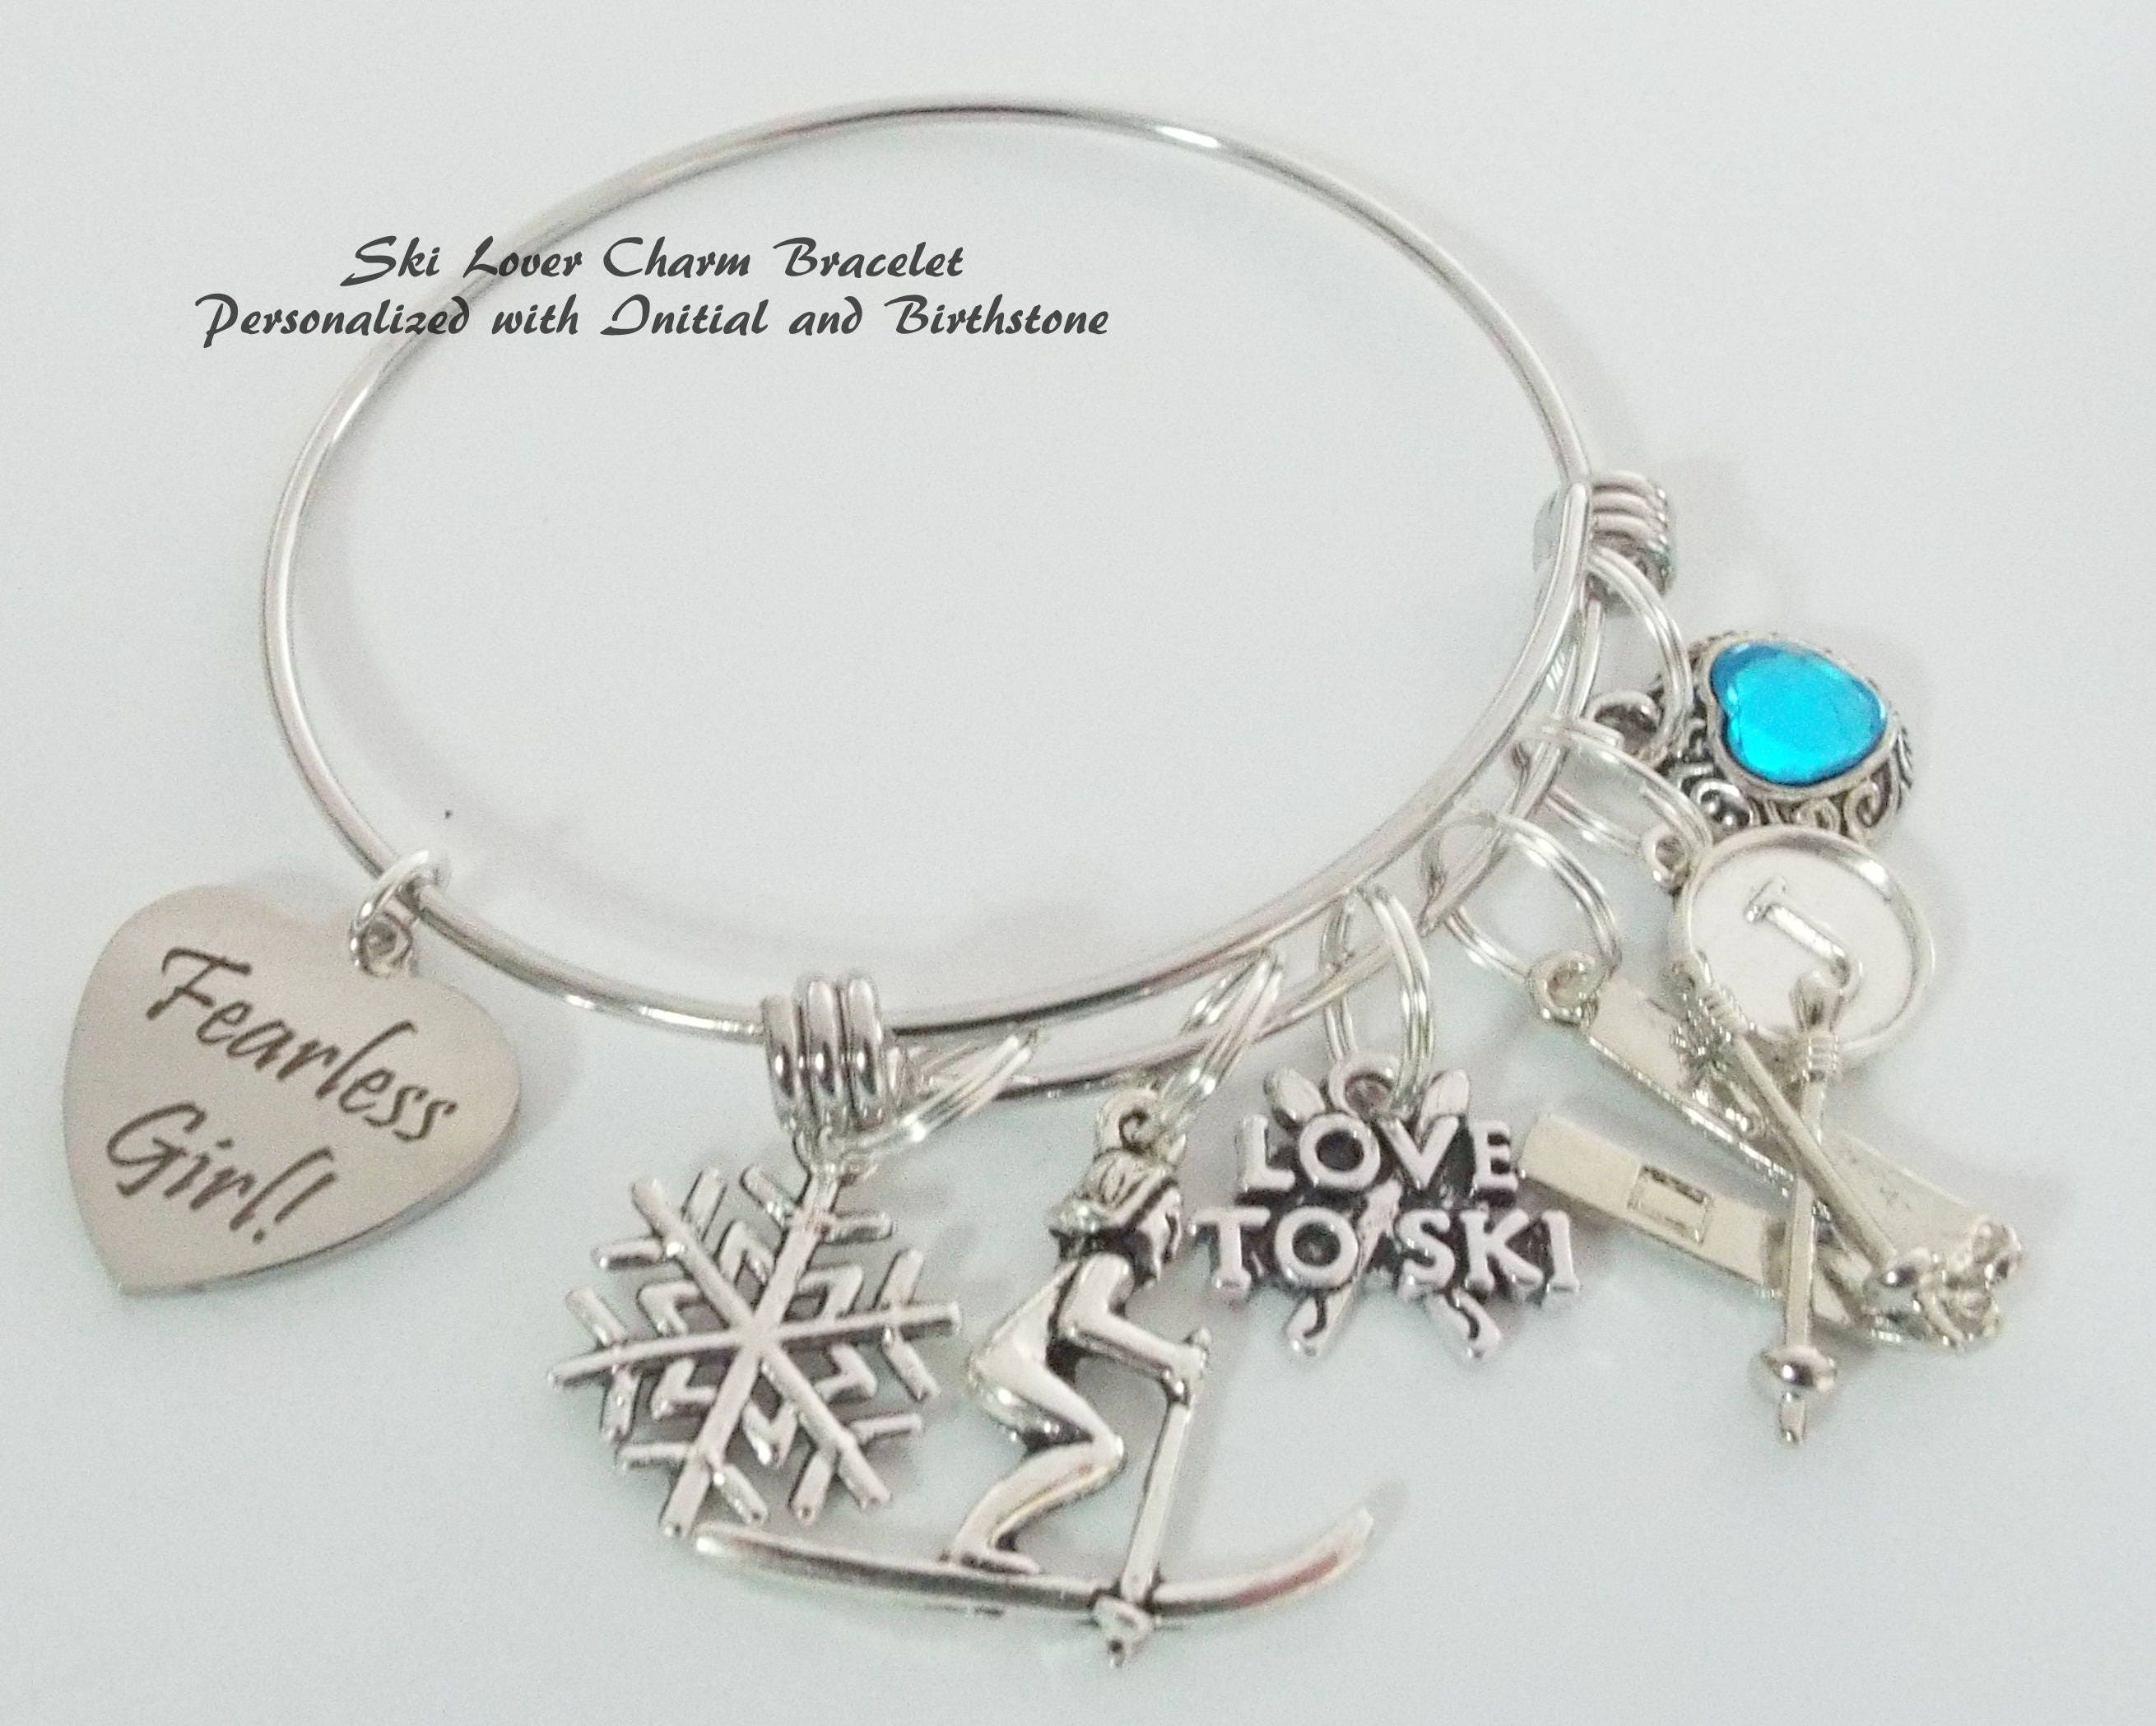 7e2152620 ... Personalized Birthstone Charm Bracelet, Initial Jewelry, Gifts for Her.  gallery photo ...